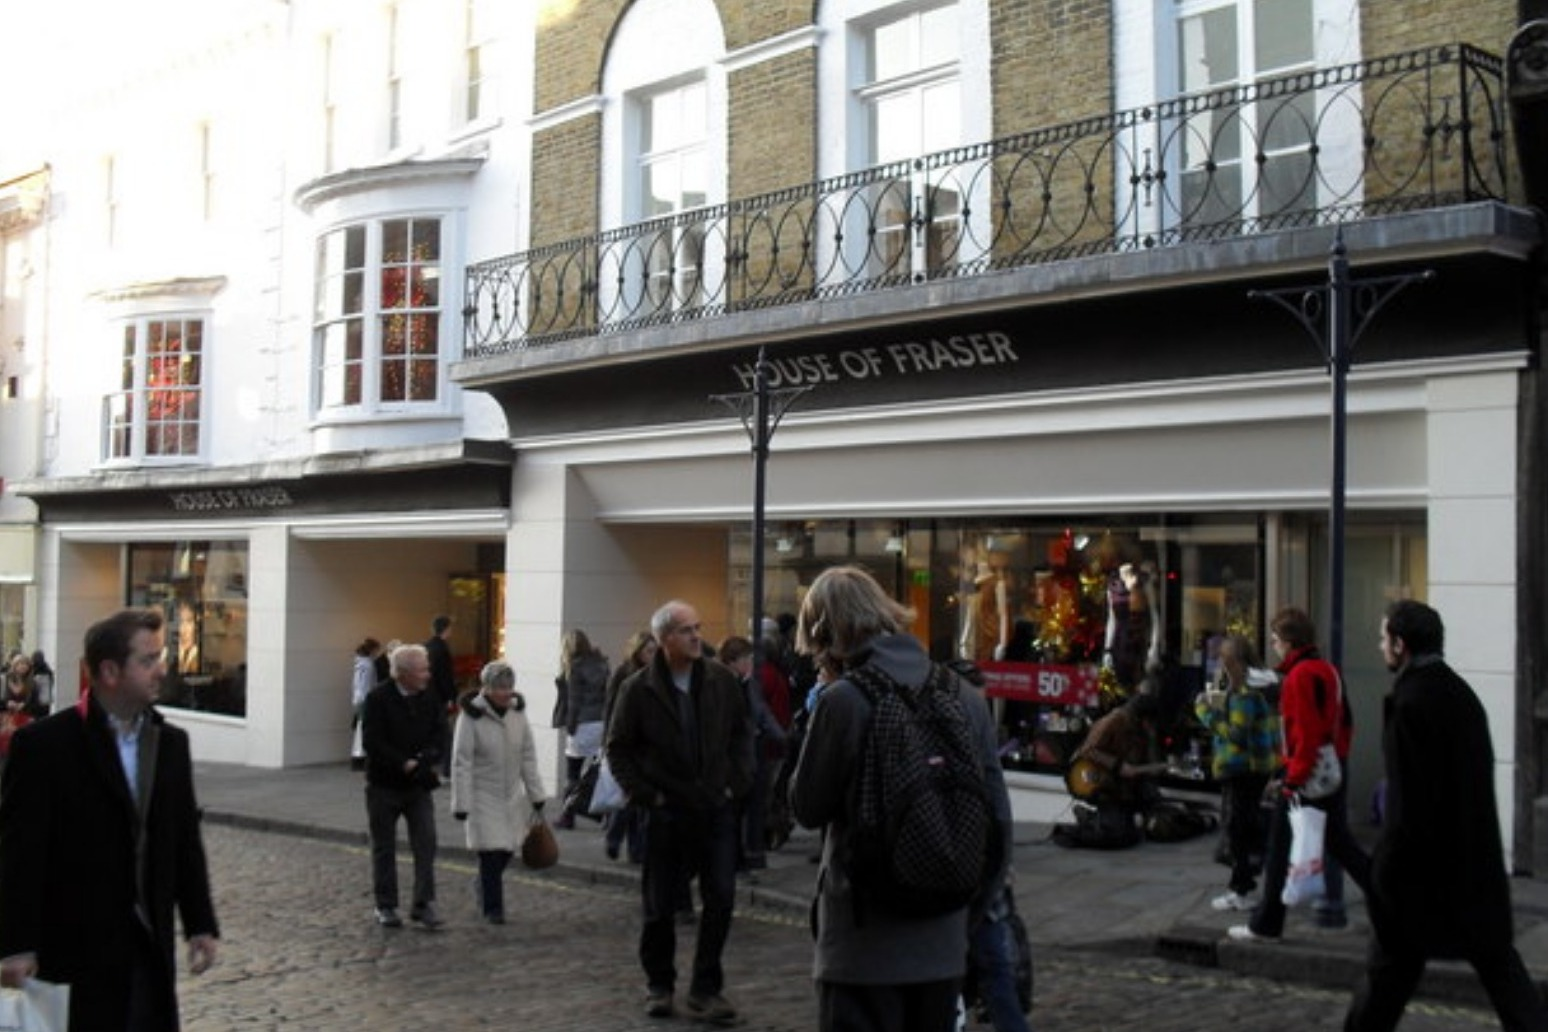 House of Fraser appoints administrators leaving 1700 jobs at risk